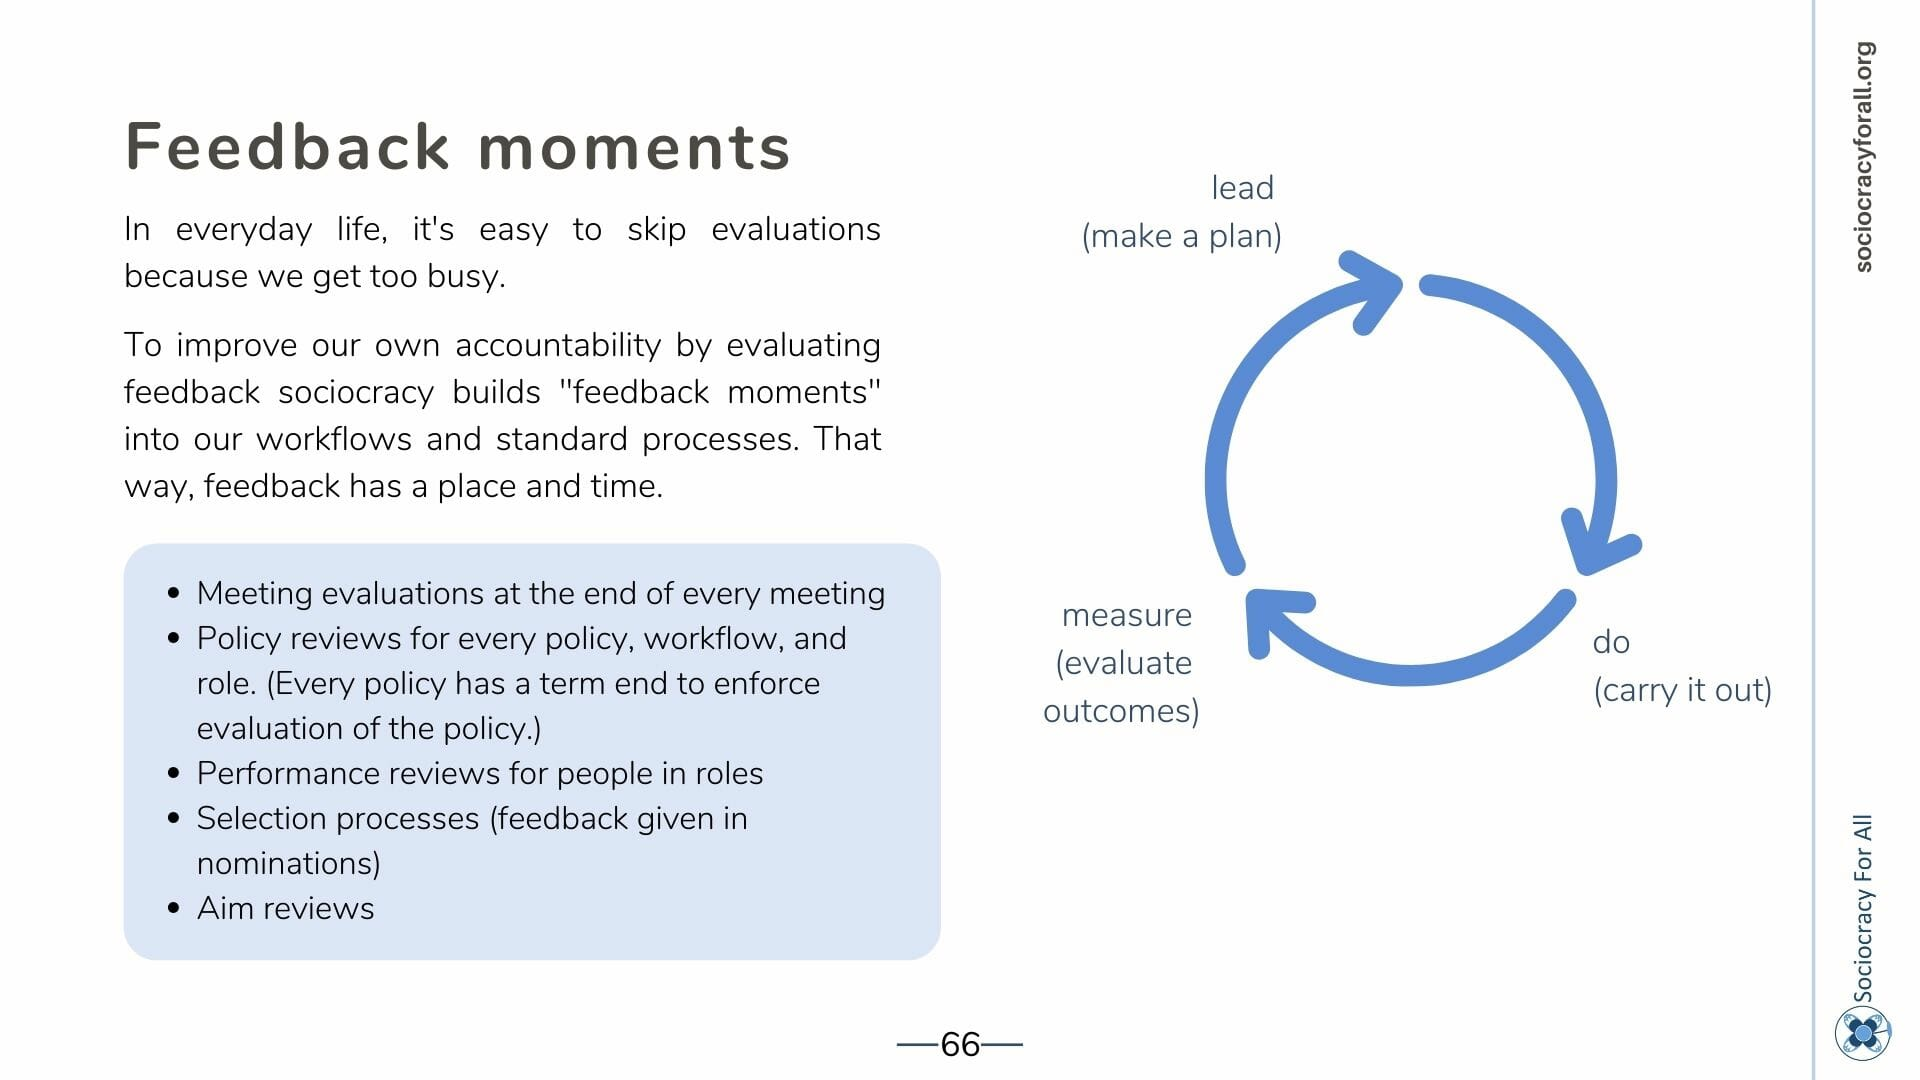 """Feedback moments In everyday life, it's easy to skip evaluations because we get too busy. To improve our own accountability by evaluating feedback sociocracy builds """"feedback moments"""" into our workflows and standard processes. That way, feedback has a place and time. * Meeting evaluations at the end of every meeting * Policy reviews for every policy, workflow, and role. (Every policy has a term end to enforce evaluation of the policy.) * Performance reviews for people in roles * Selection processes (feedback given in nominations) * Aim reviews"""